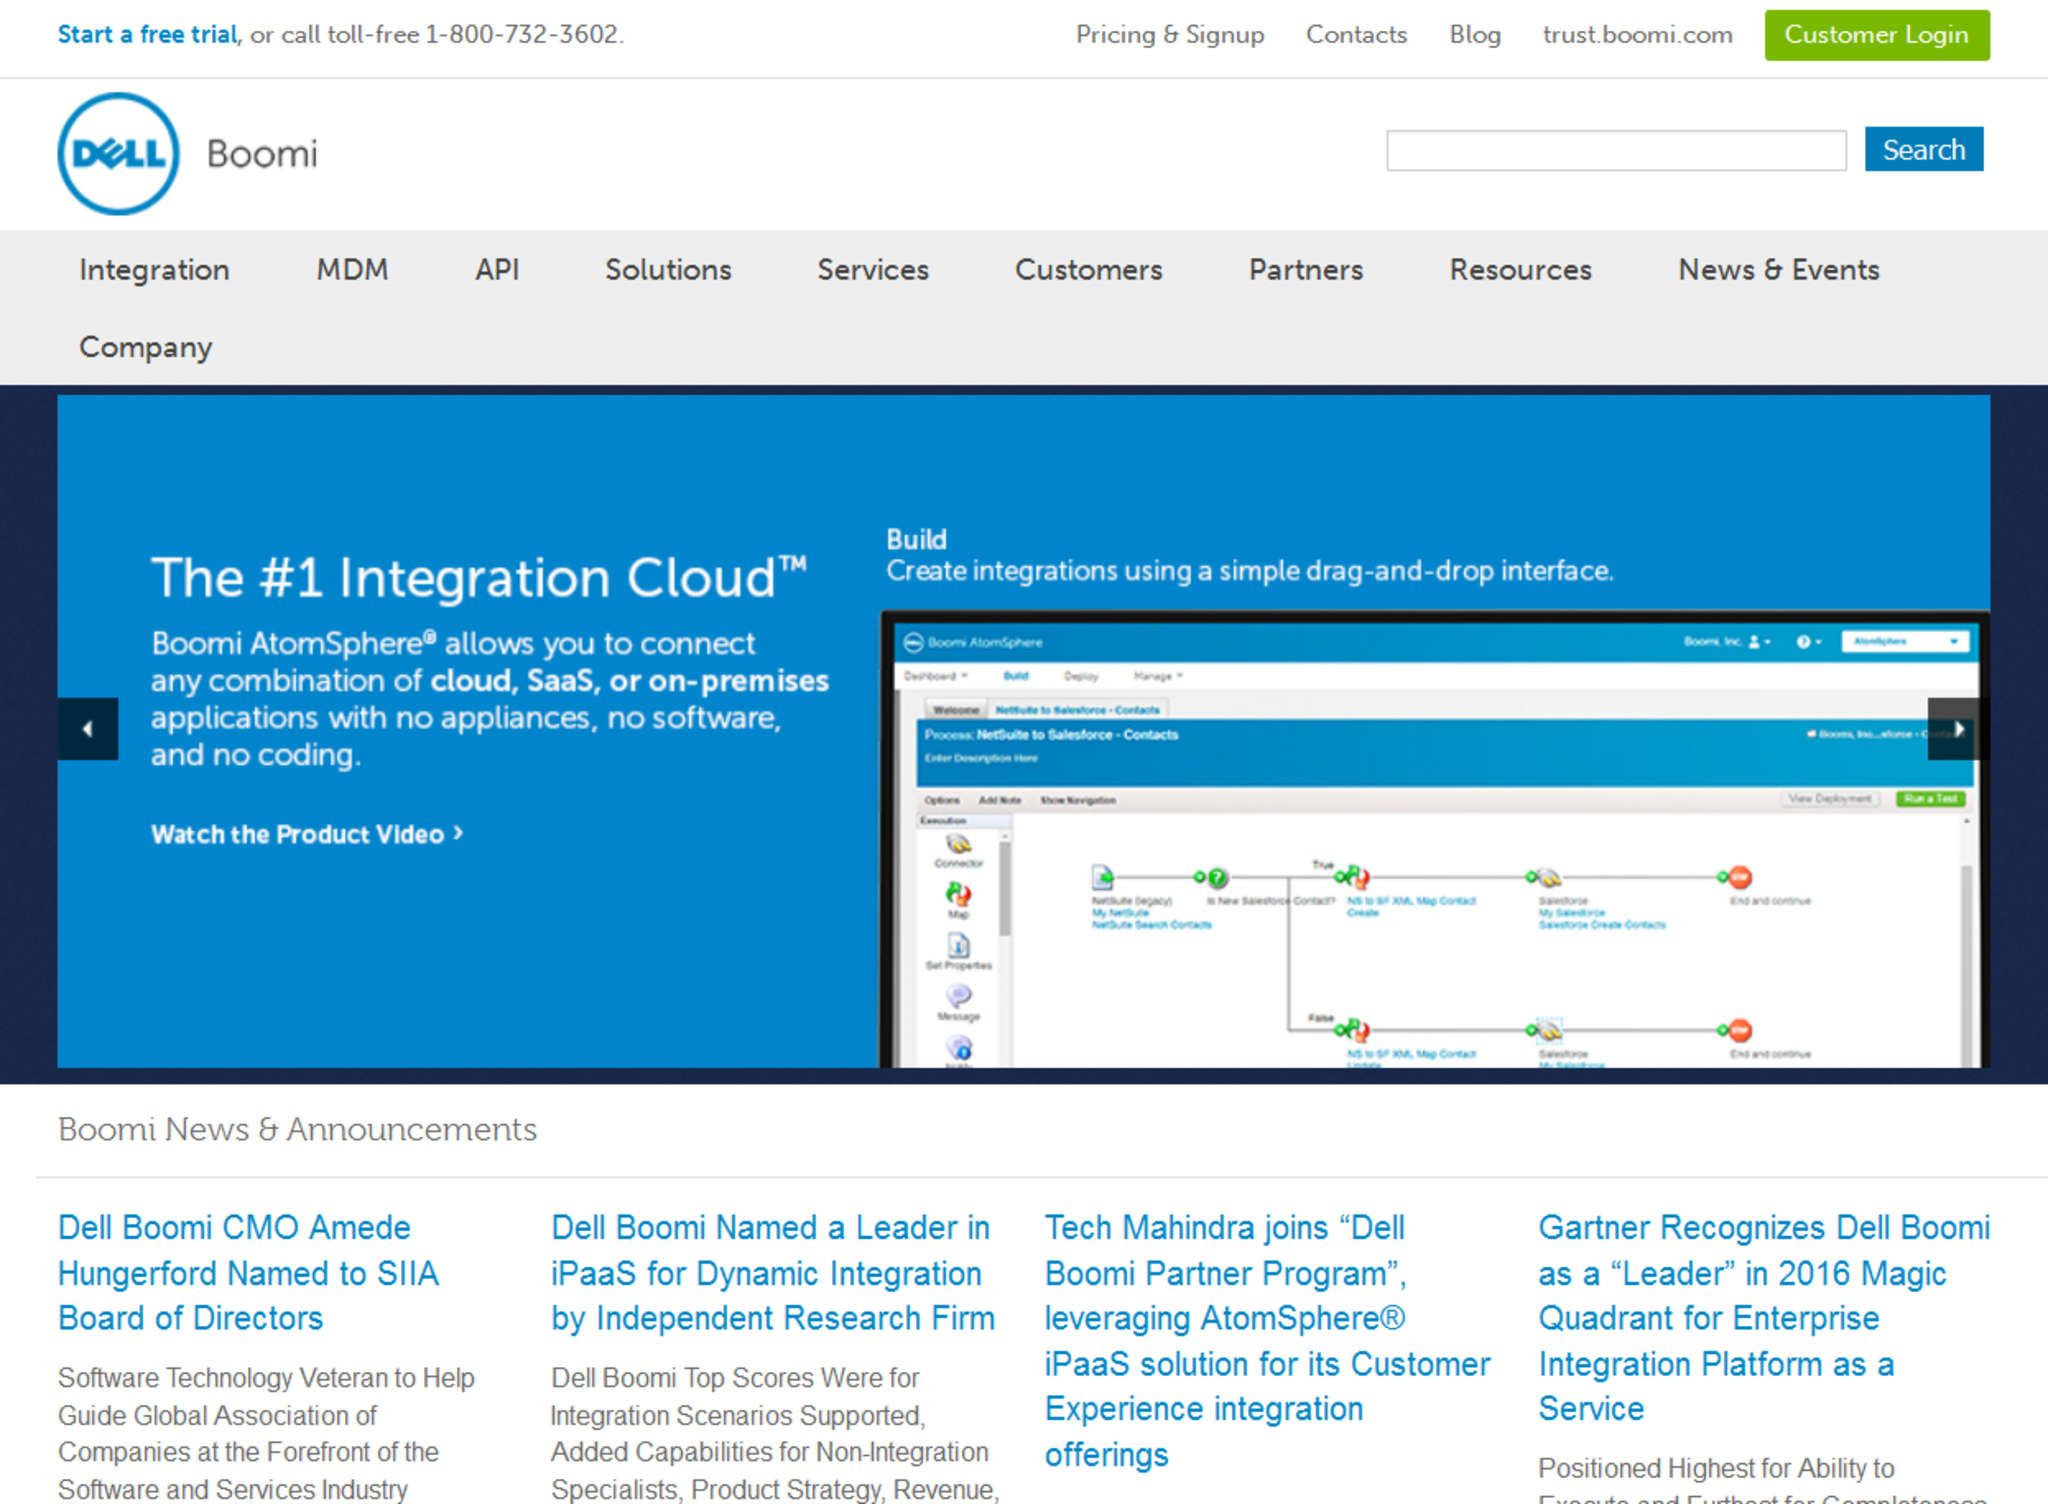 Boomi´s website highlighting the company´s cloud integration.